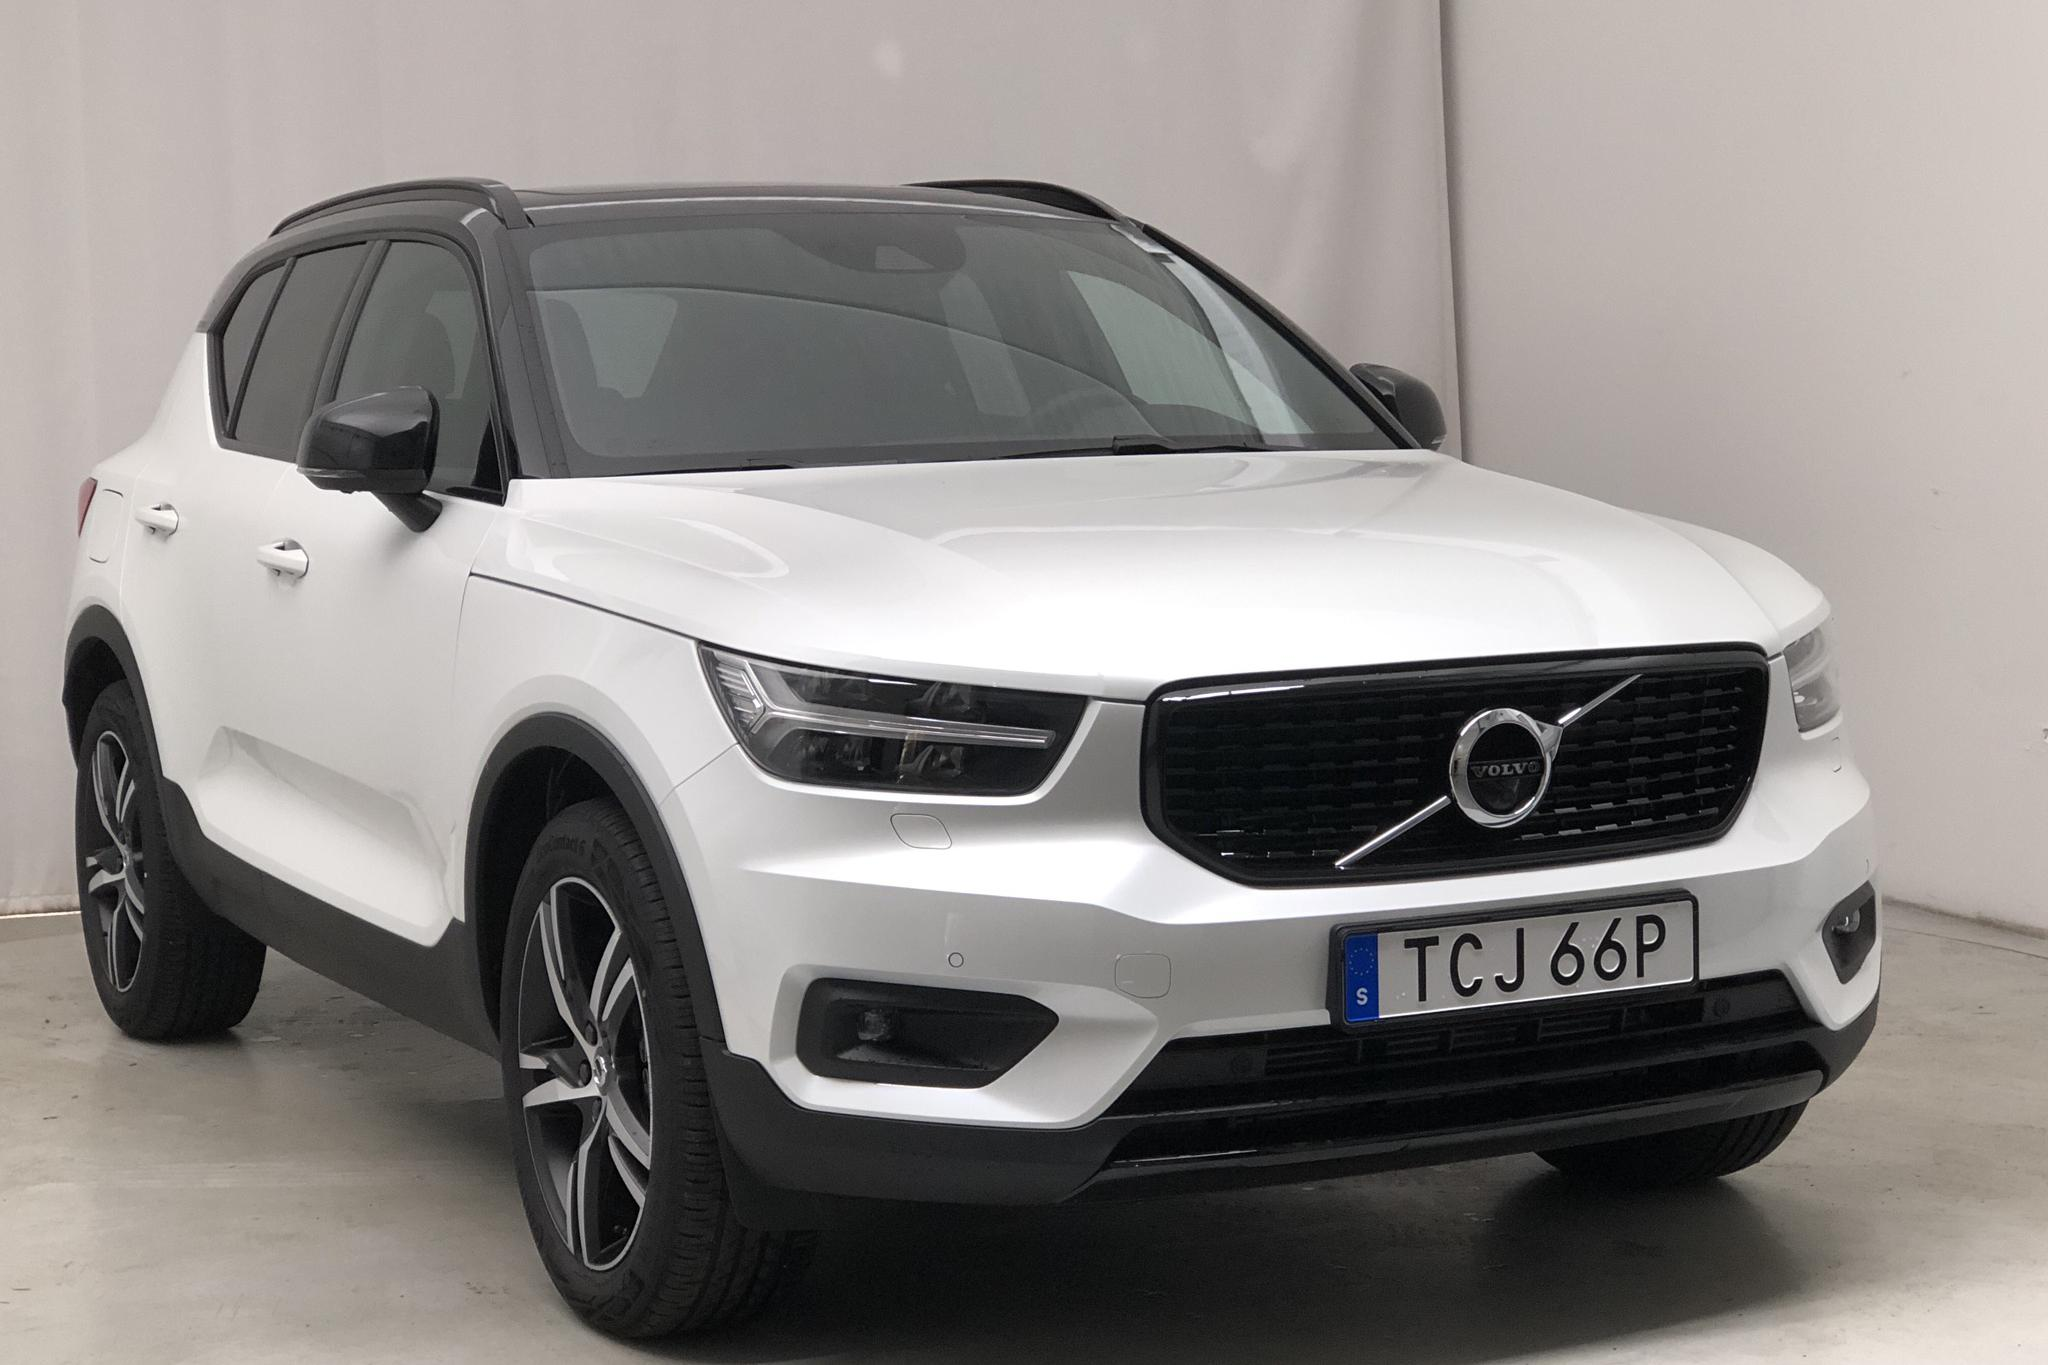 Volvo XC40 T5 2WD Twin Engine (262hk) - 650 km - Automatic - white - 2021